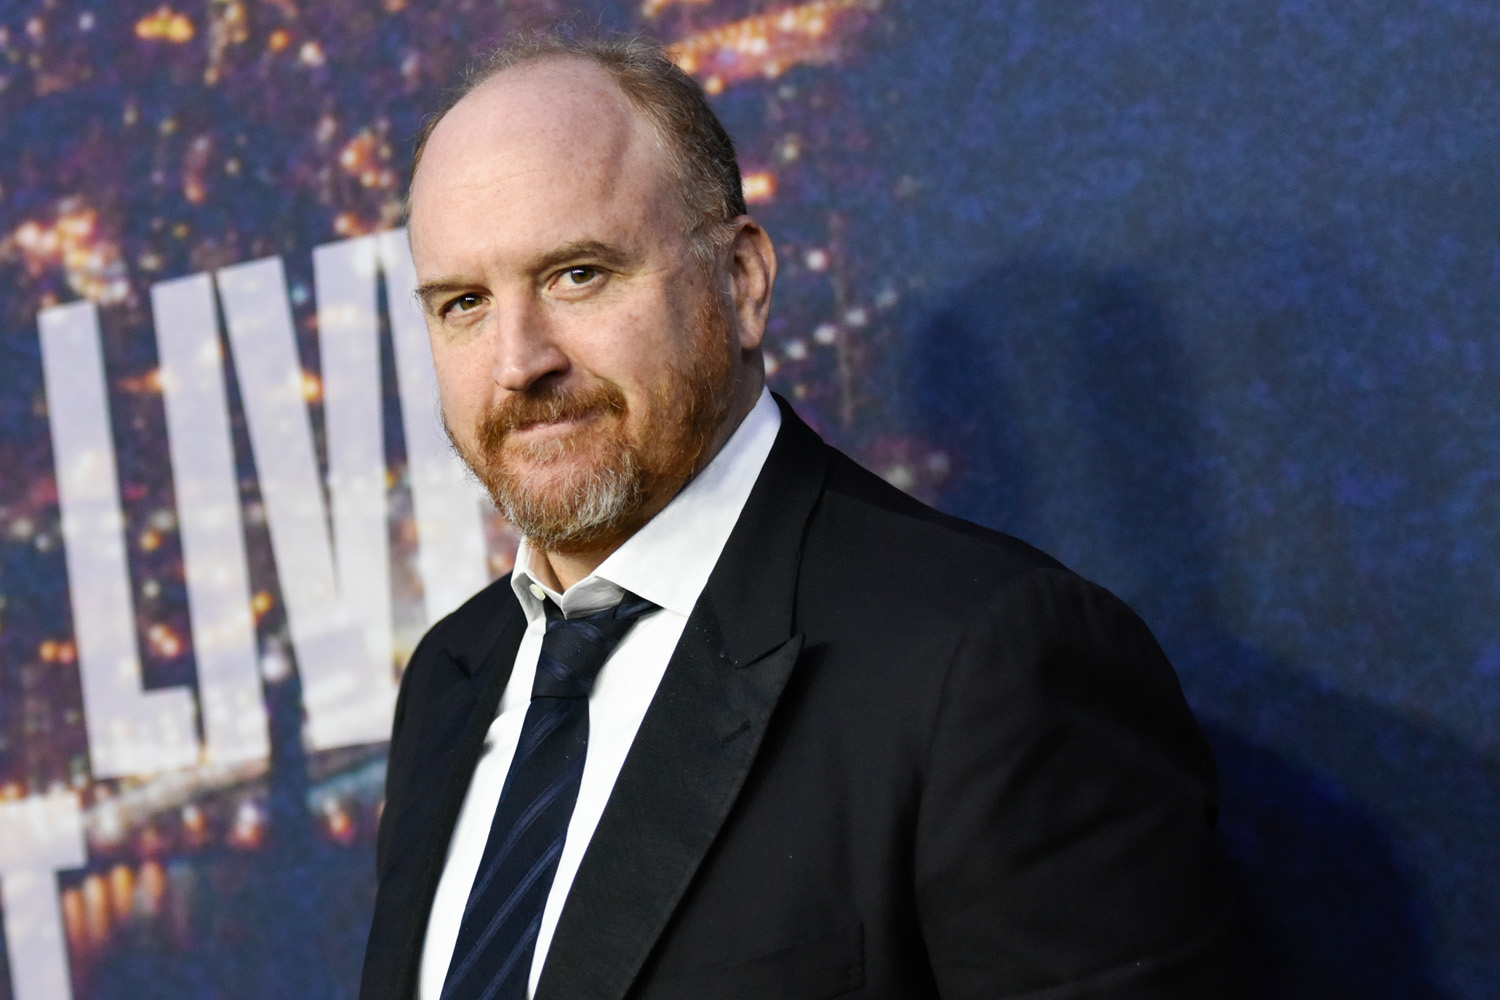 Comedian Louis CK, who has admitted lewd conduct, in 2015. (Evan Agostini/Invision/AP)